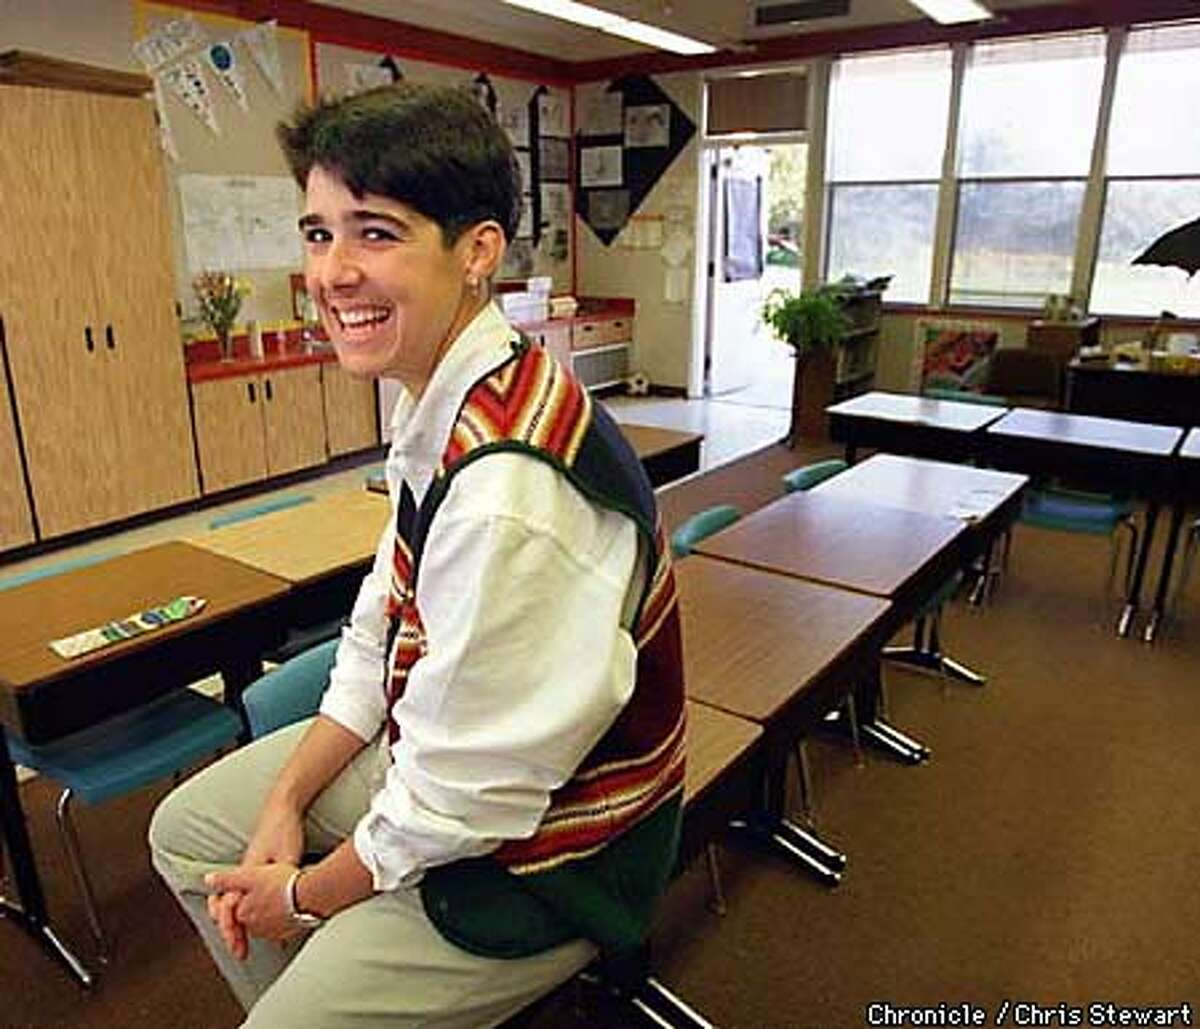 Victoria Forrester, an elementary school teacher at Amelia Earhart Elementary School in Alameda had the support of her school district when a parent, upset over a brief discussion of homosexuality in her classroom, removed his child from school and sued. SAN FRANCISCO CHRONICLE PHOTO BY CHRIS STEWART